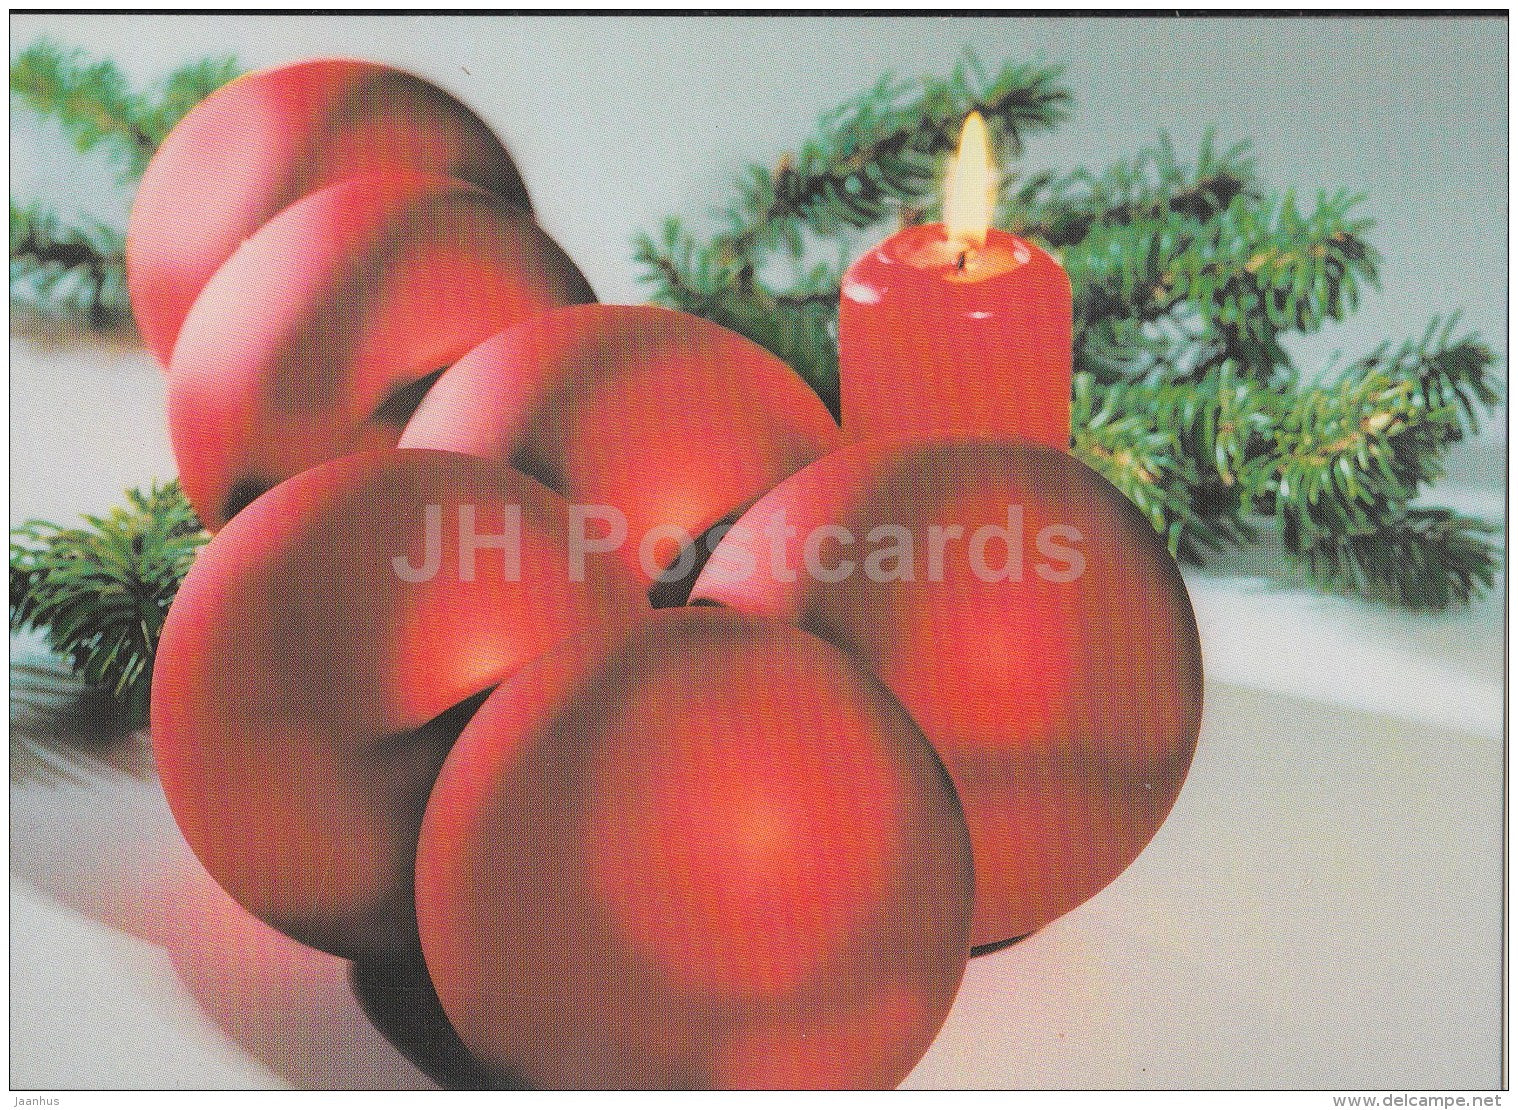 Christmas Greeting Card - decoration - candle - Estonia - used in 1998 - JH Postcards